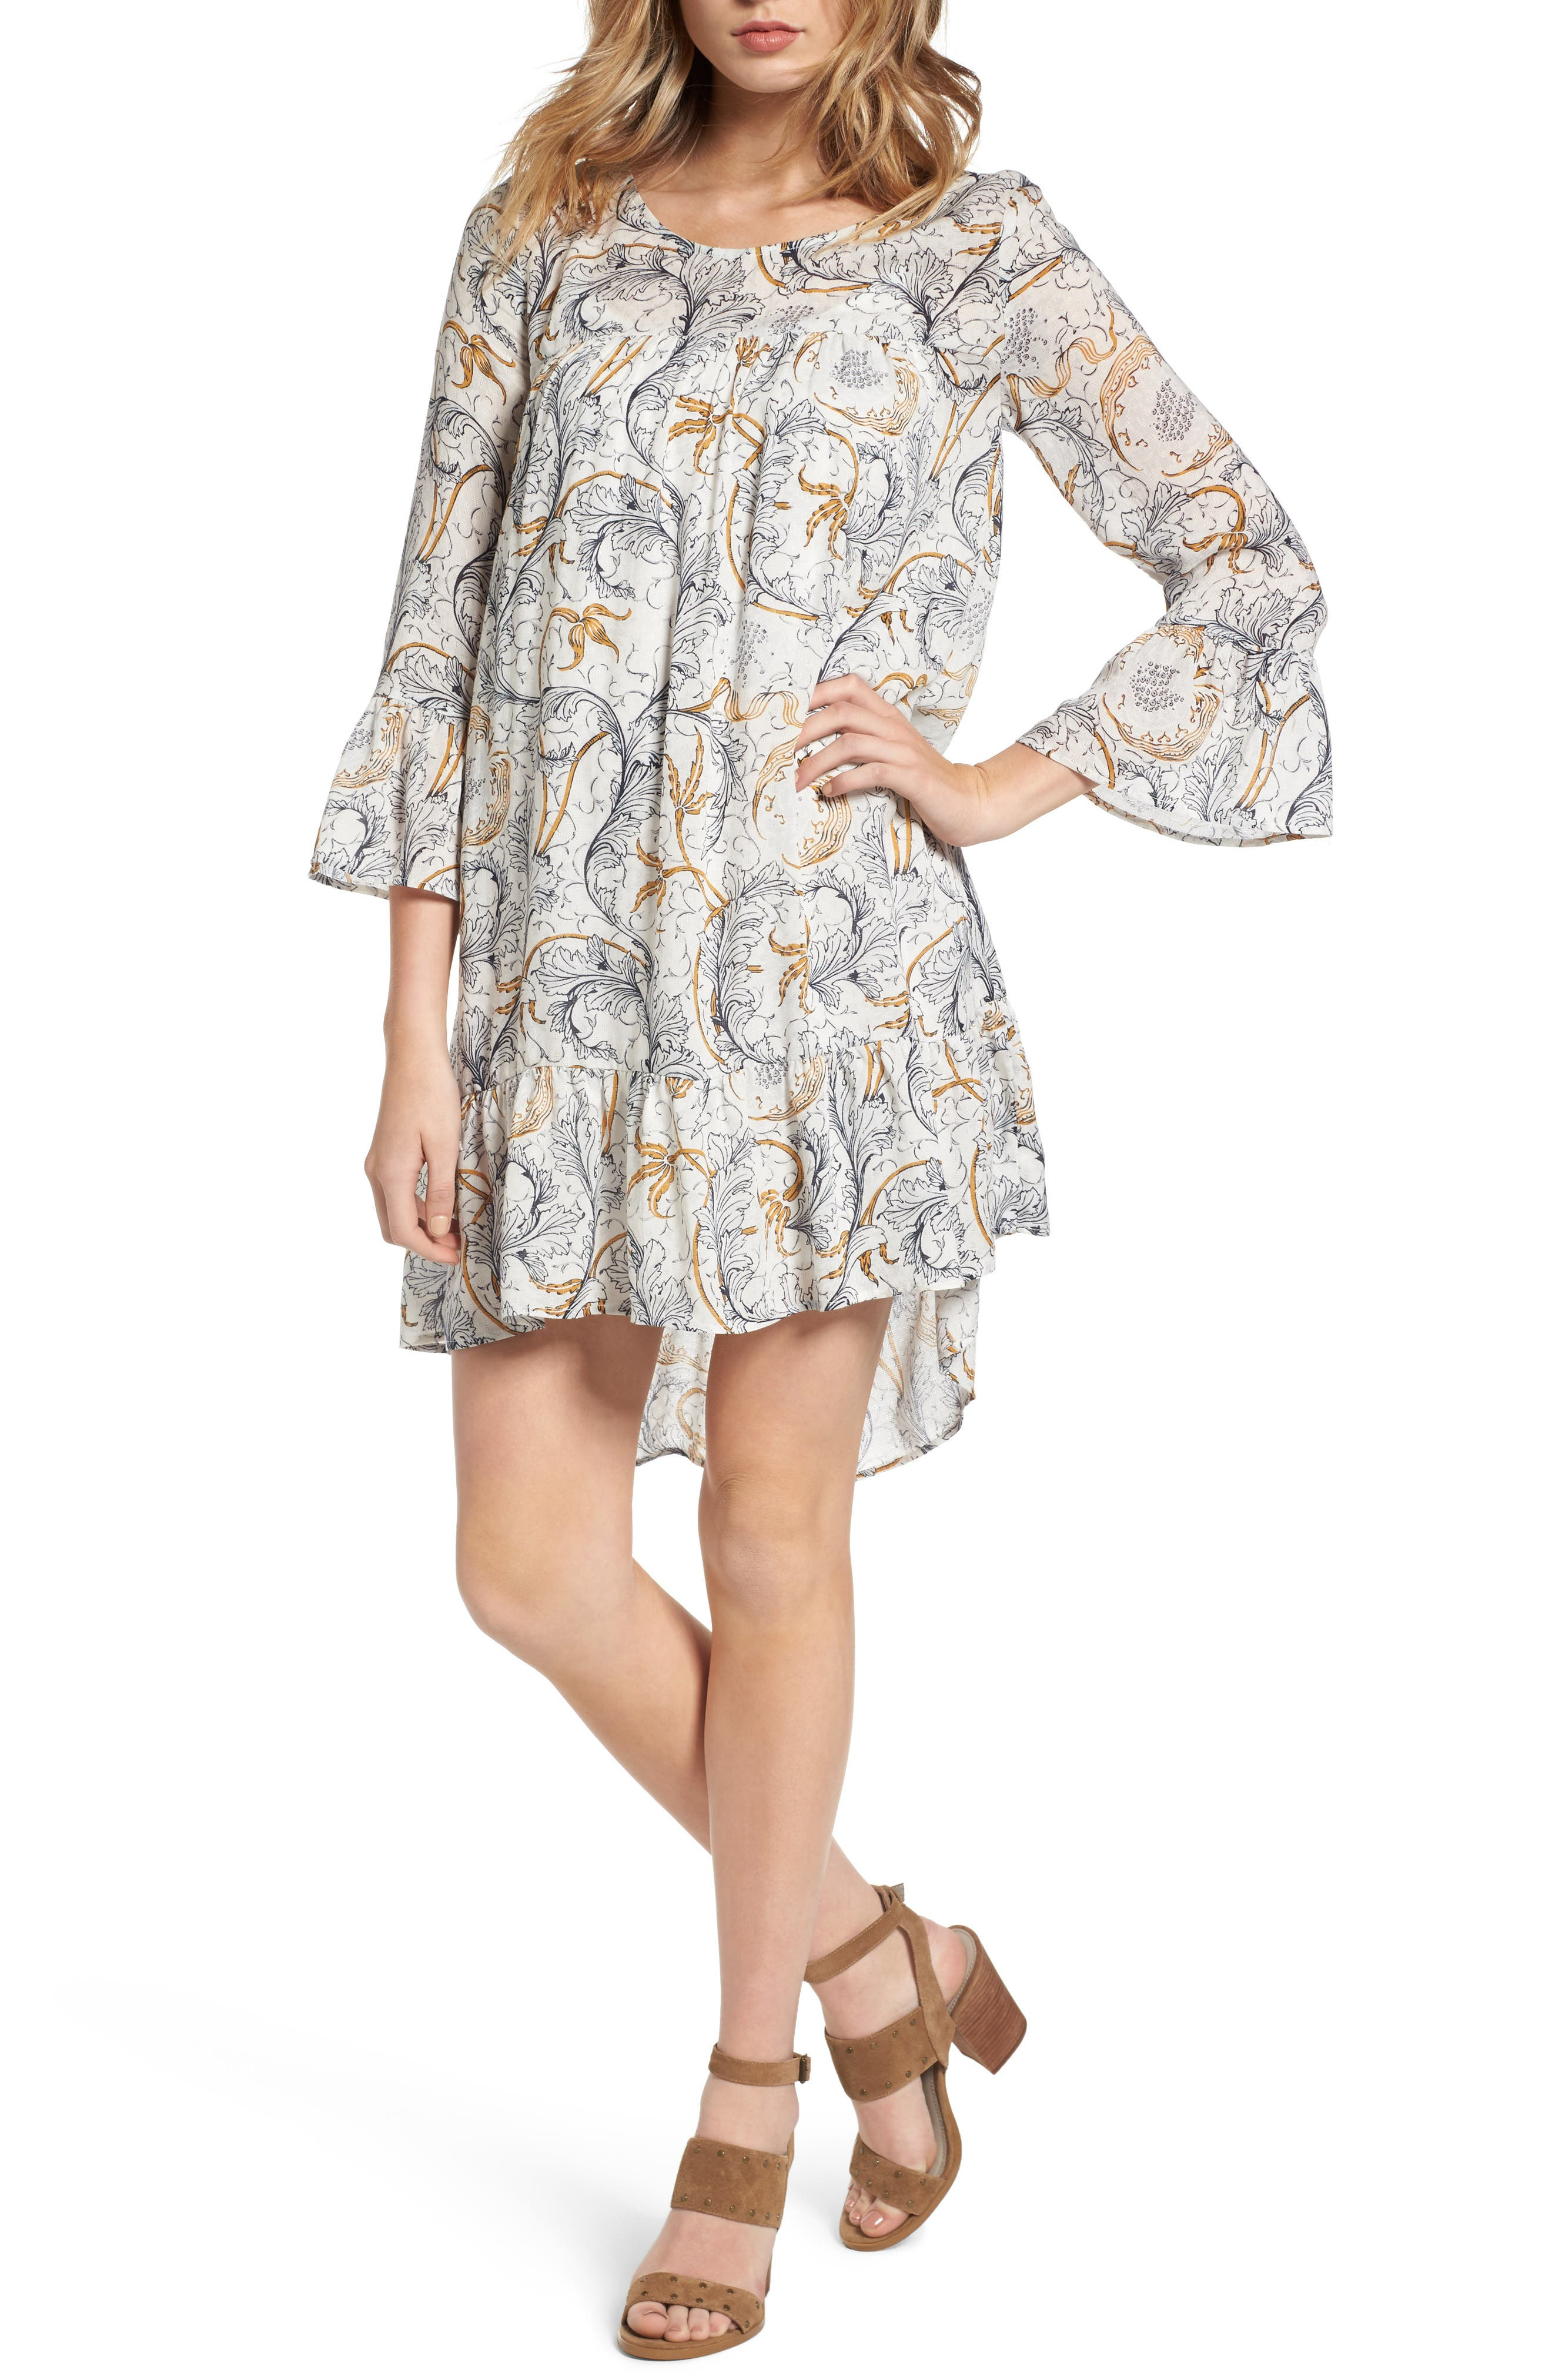 Ruffle Print Dress,                         Main,                         color, Grey Fog Feathered Floral